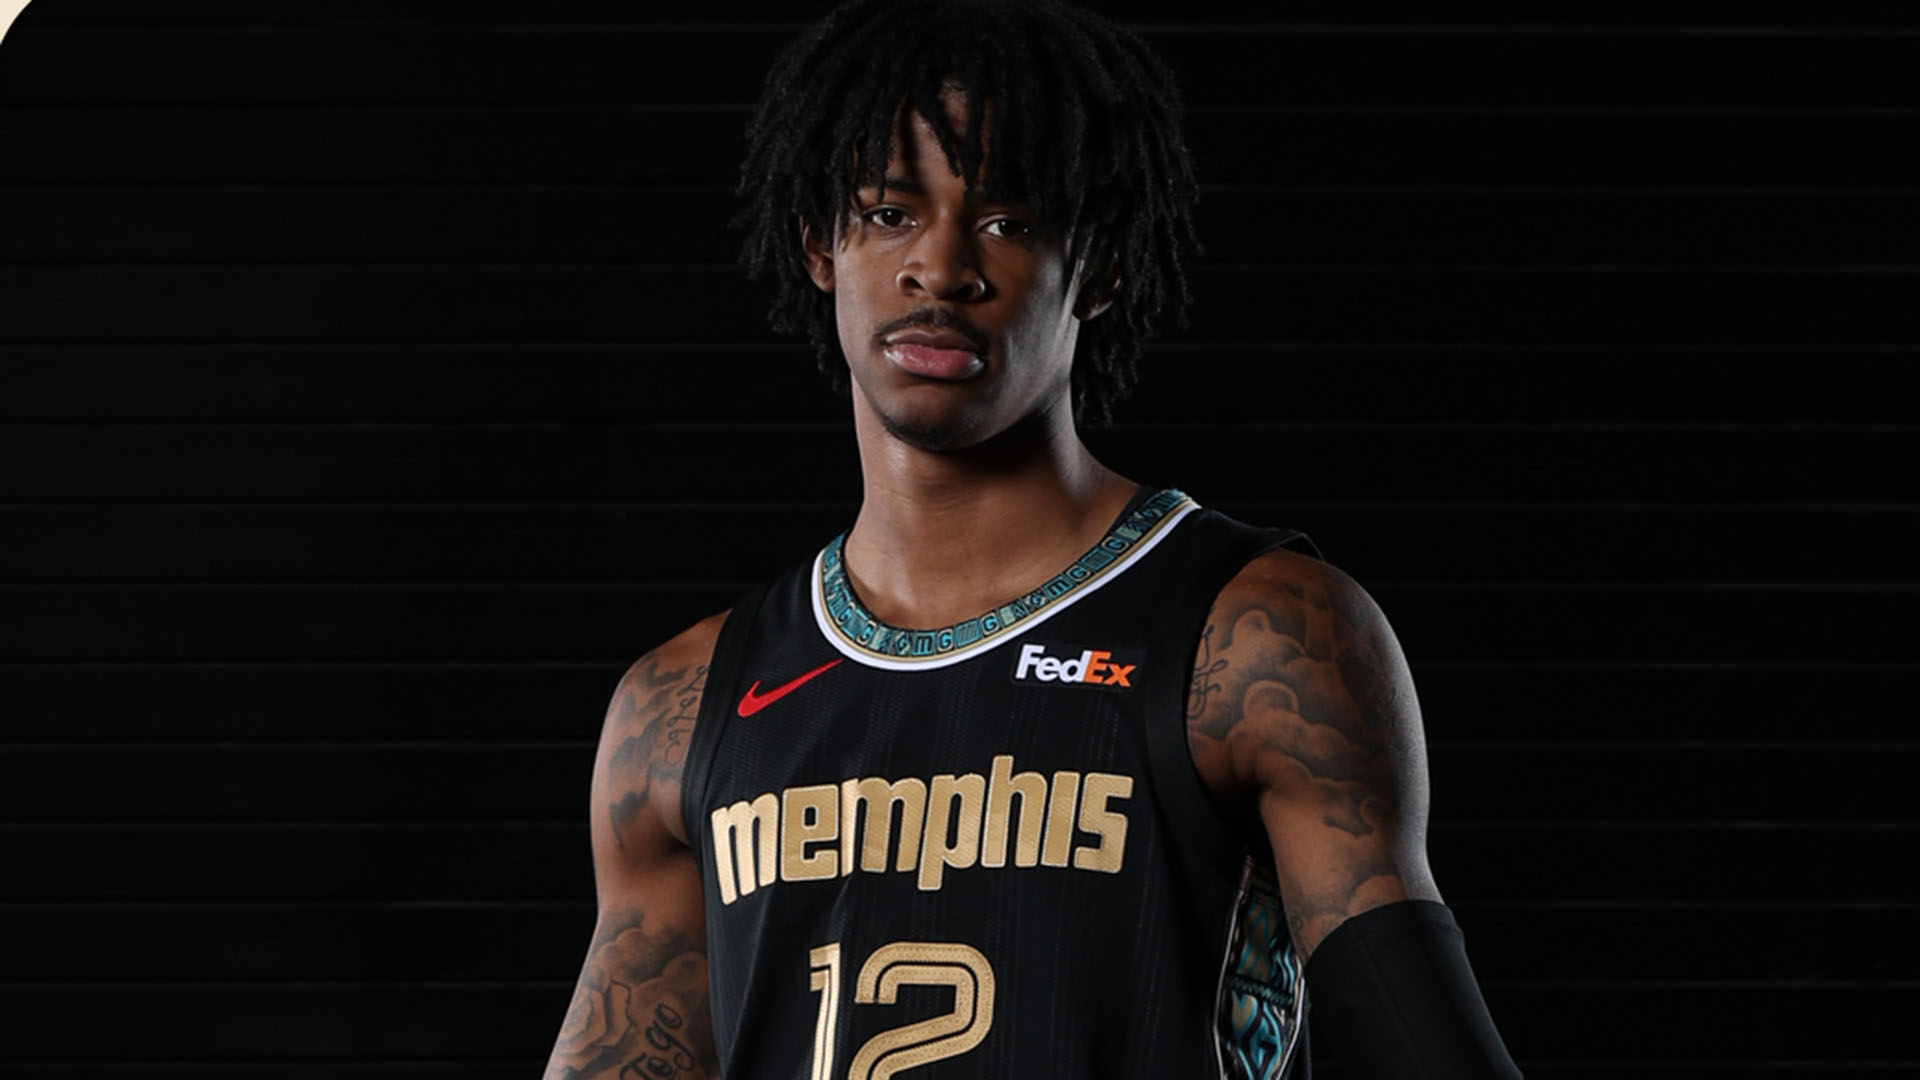 Memphis pays homage to its music history with City Edition uniforms